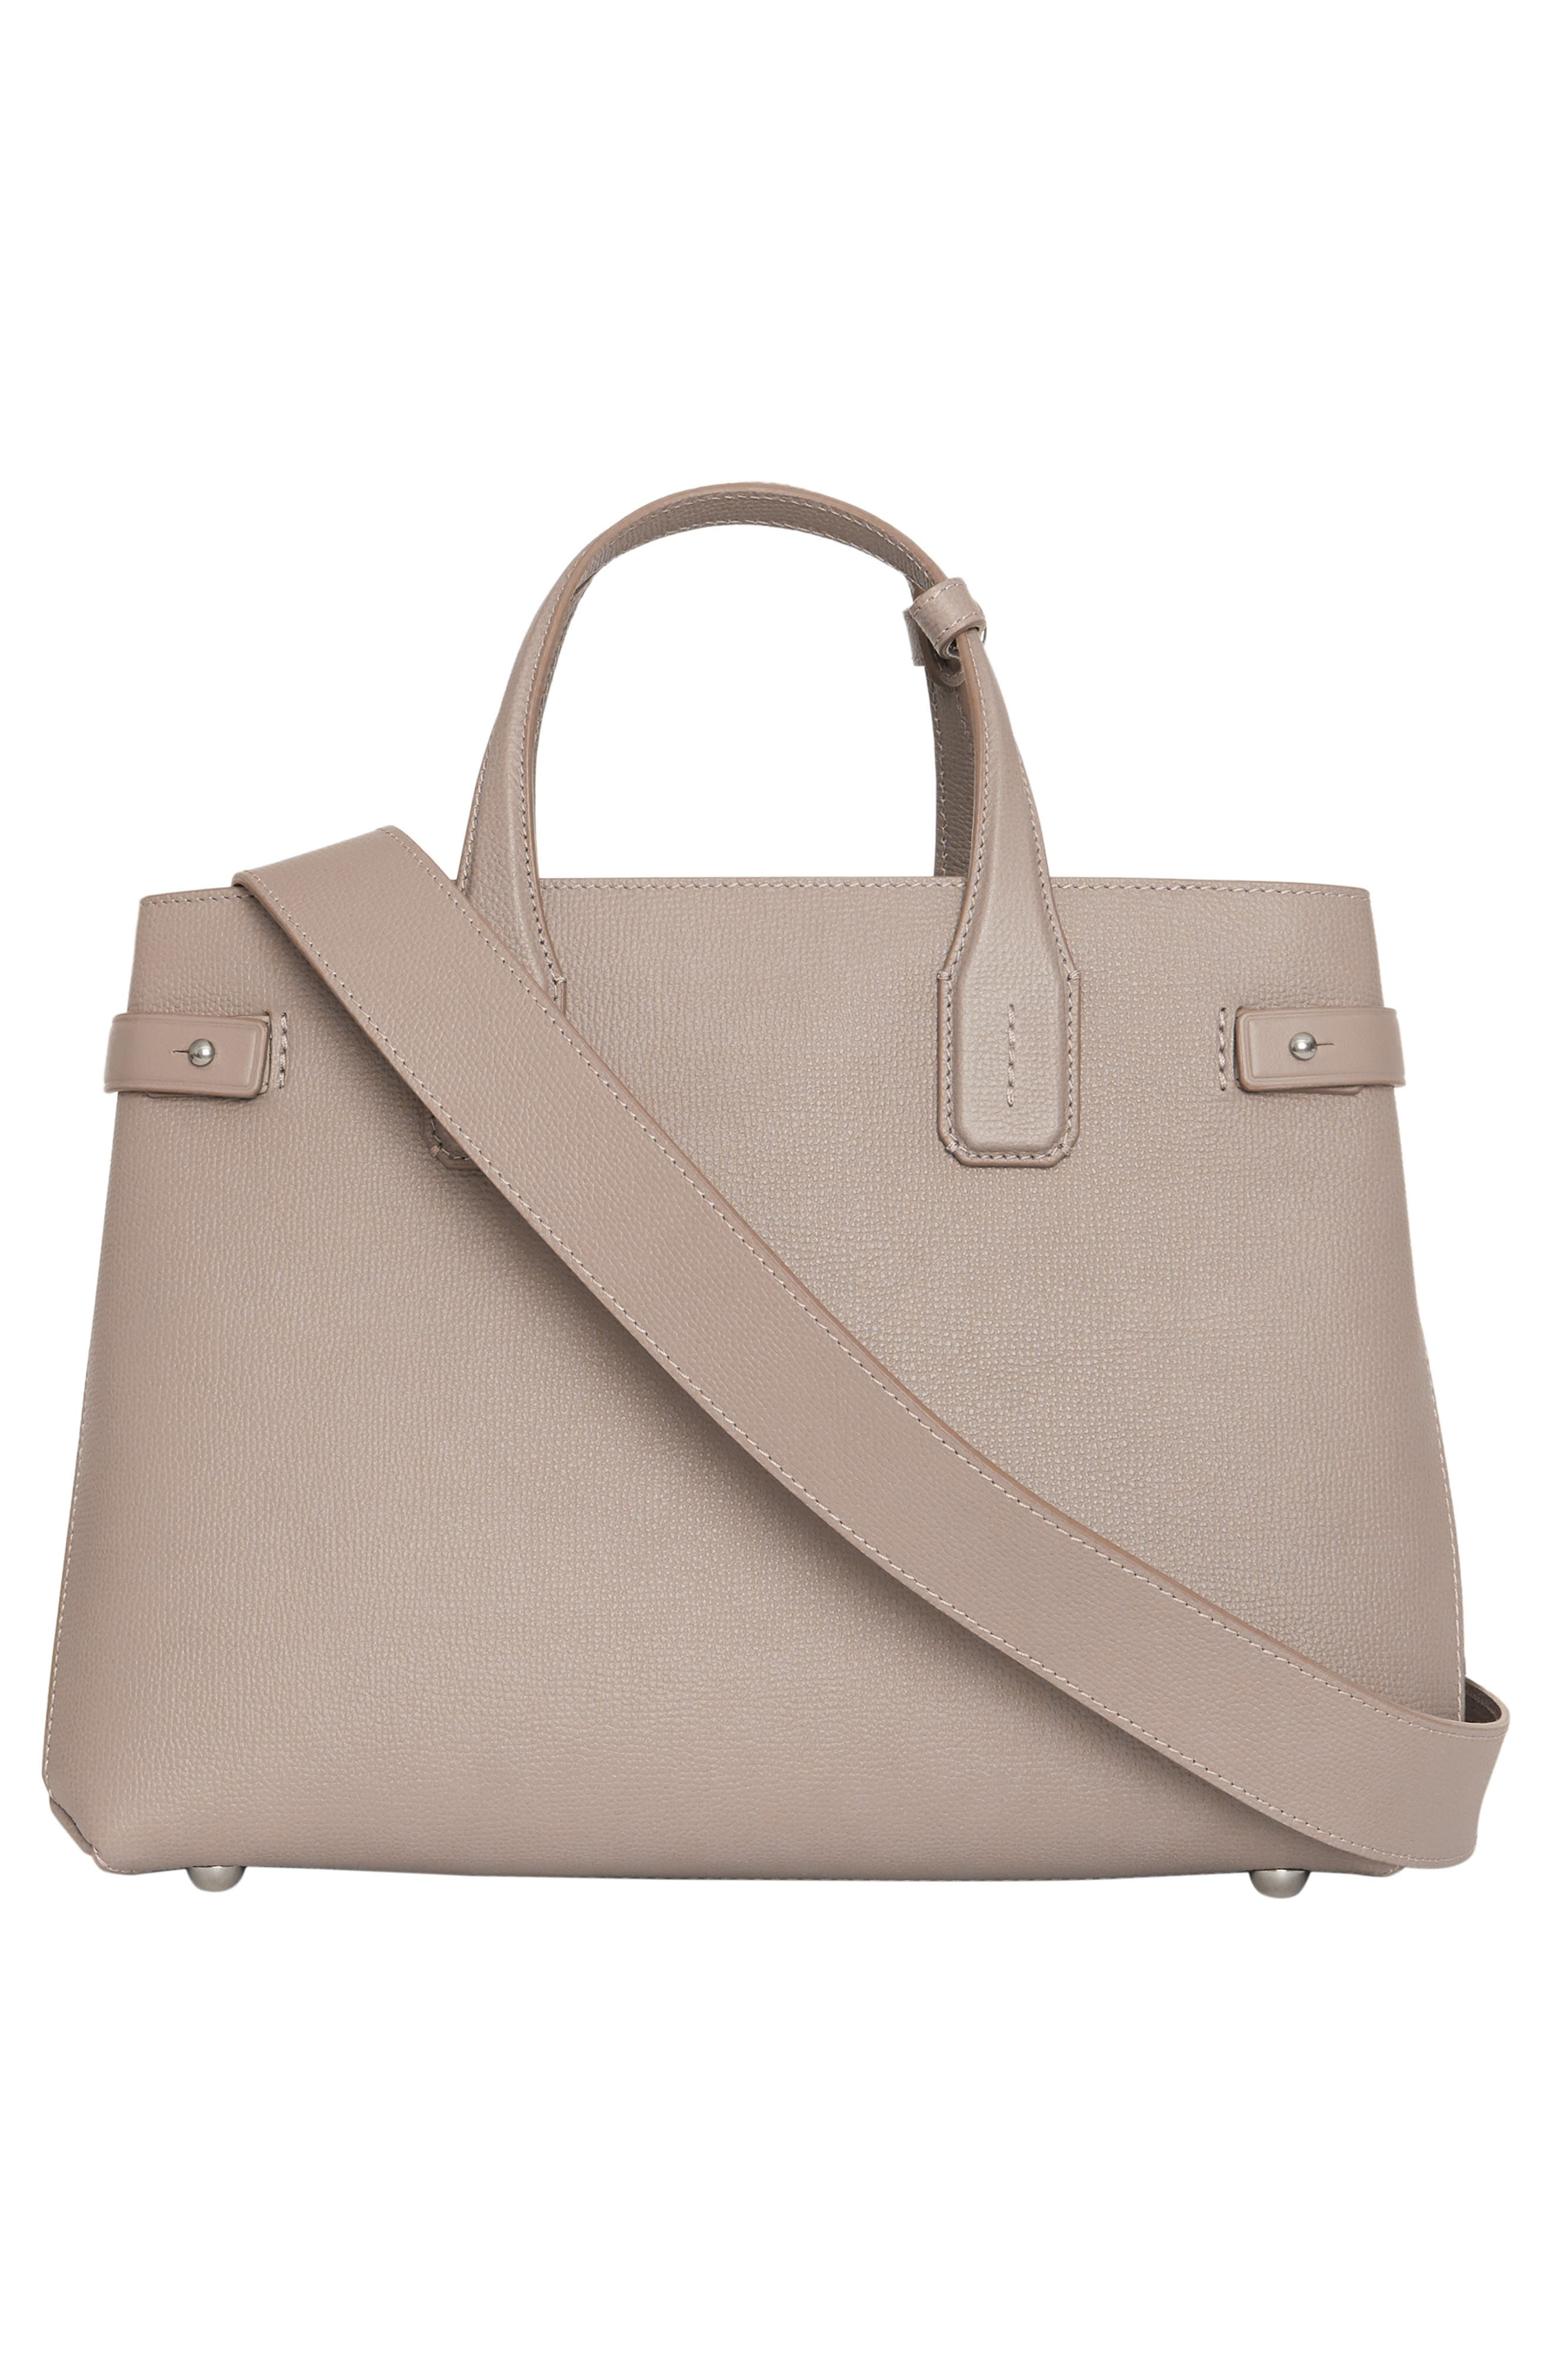 Medium Banner Leather Tote,                             Alternate thumbnail 3, color,                             TAUPE BROWN